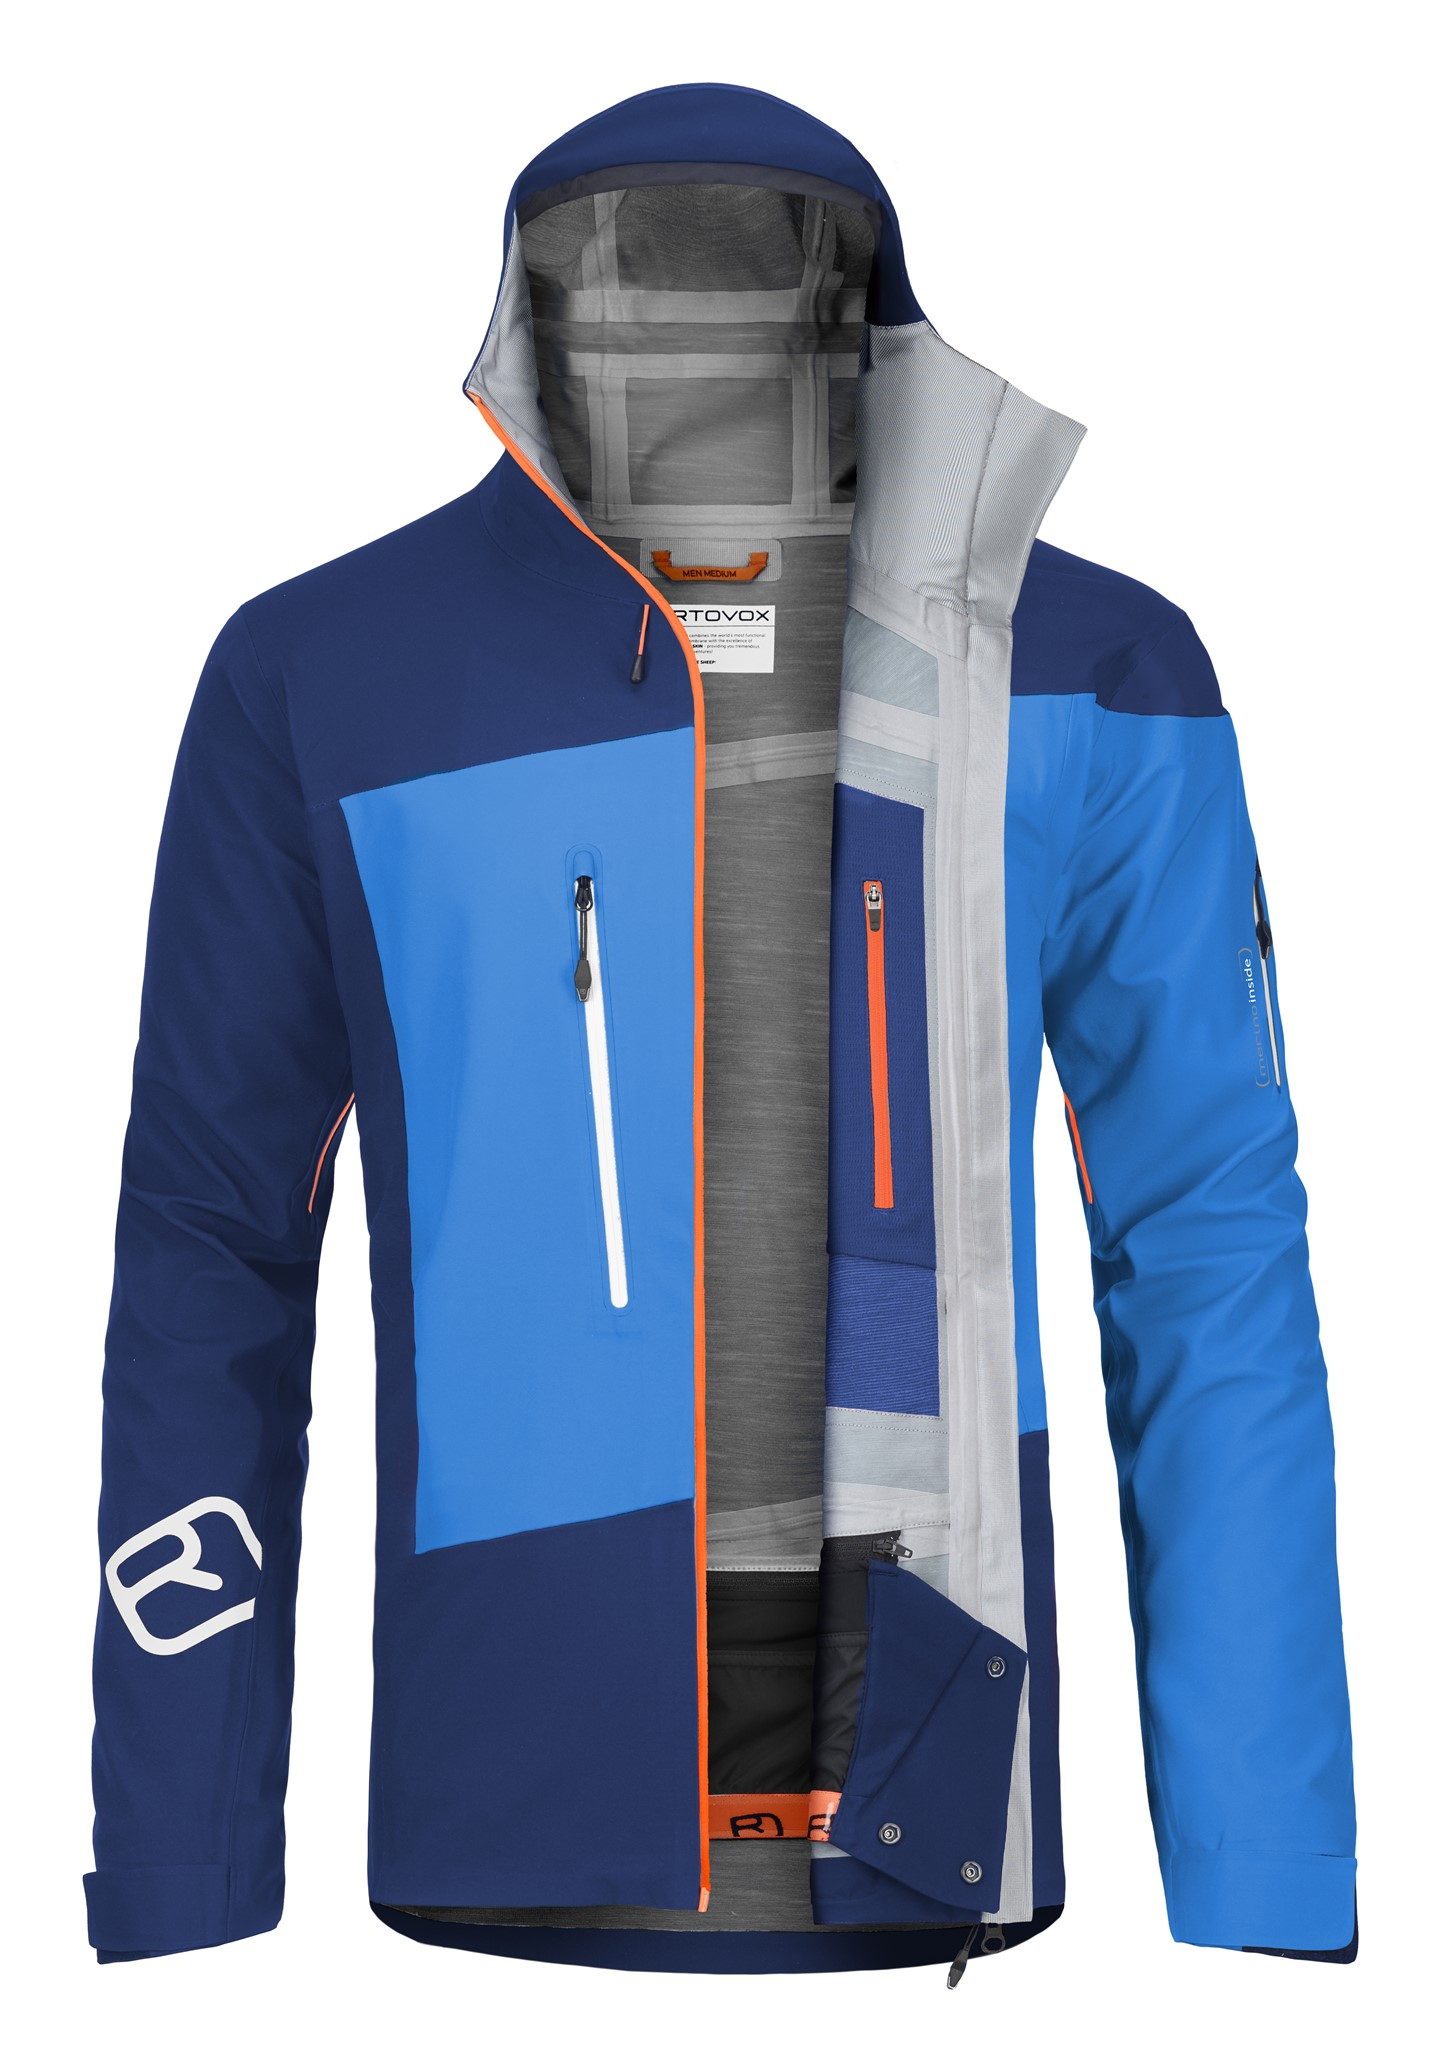 MERINO-GUARDIAN-SHELL-3L-JACKET-M-70201-strong-blue-OPEN-1440.jpg Forrás: Ortovox